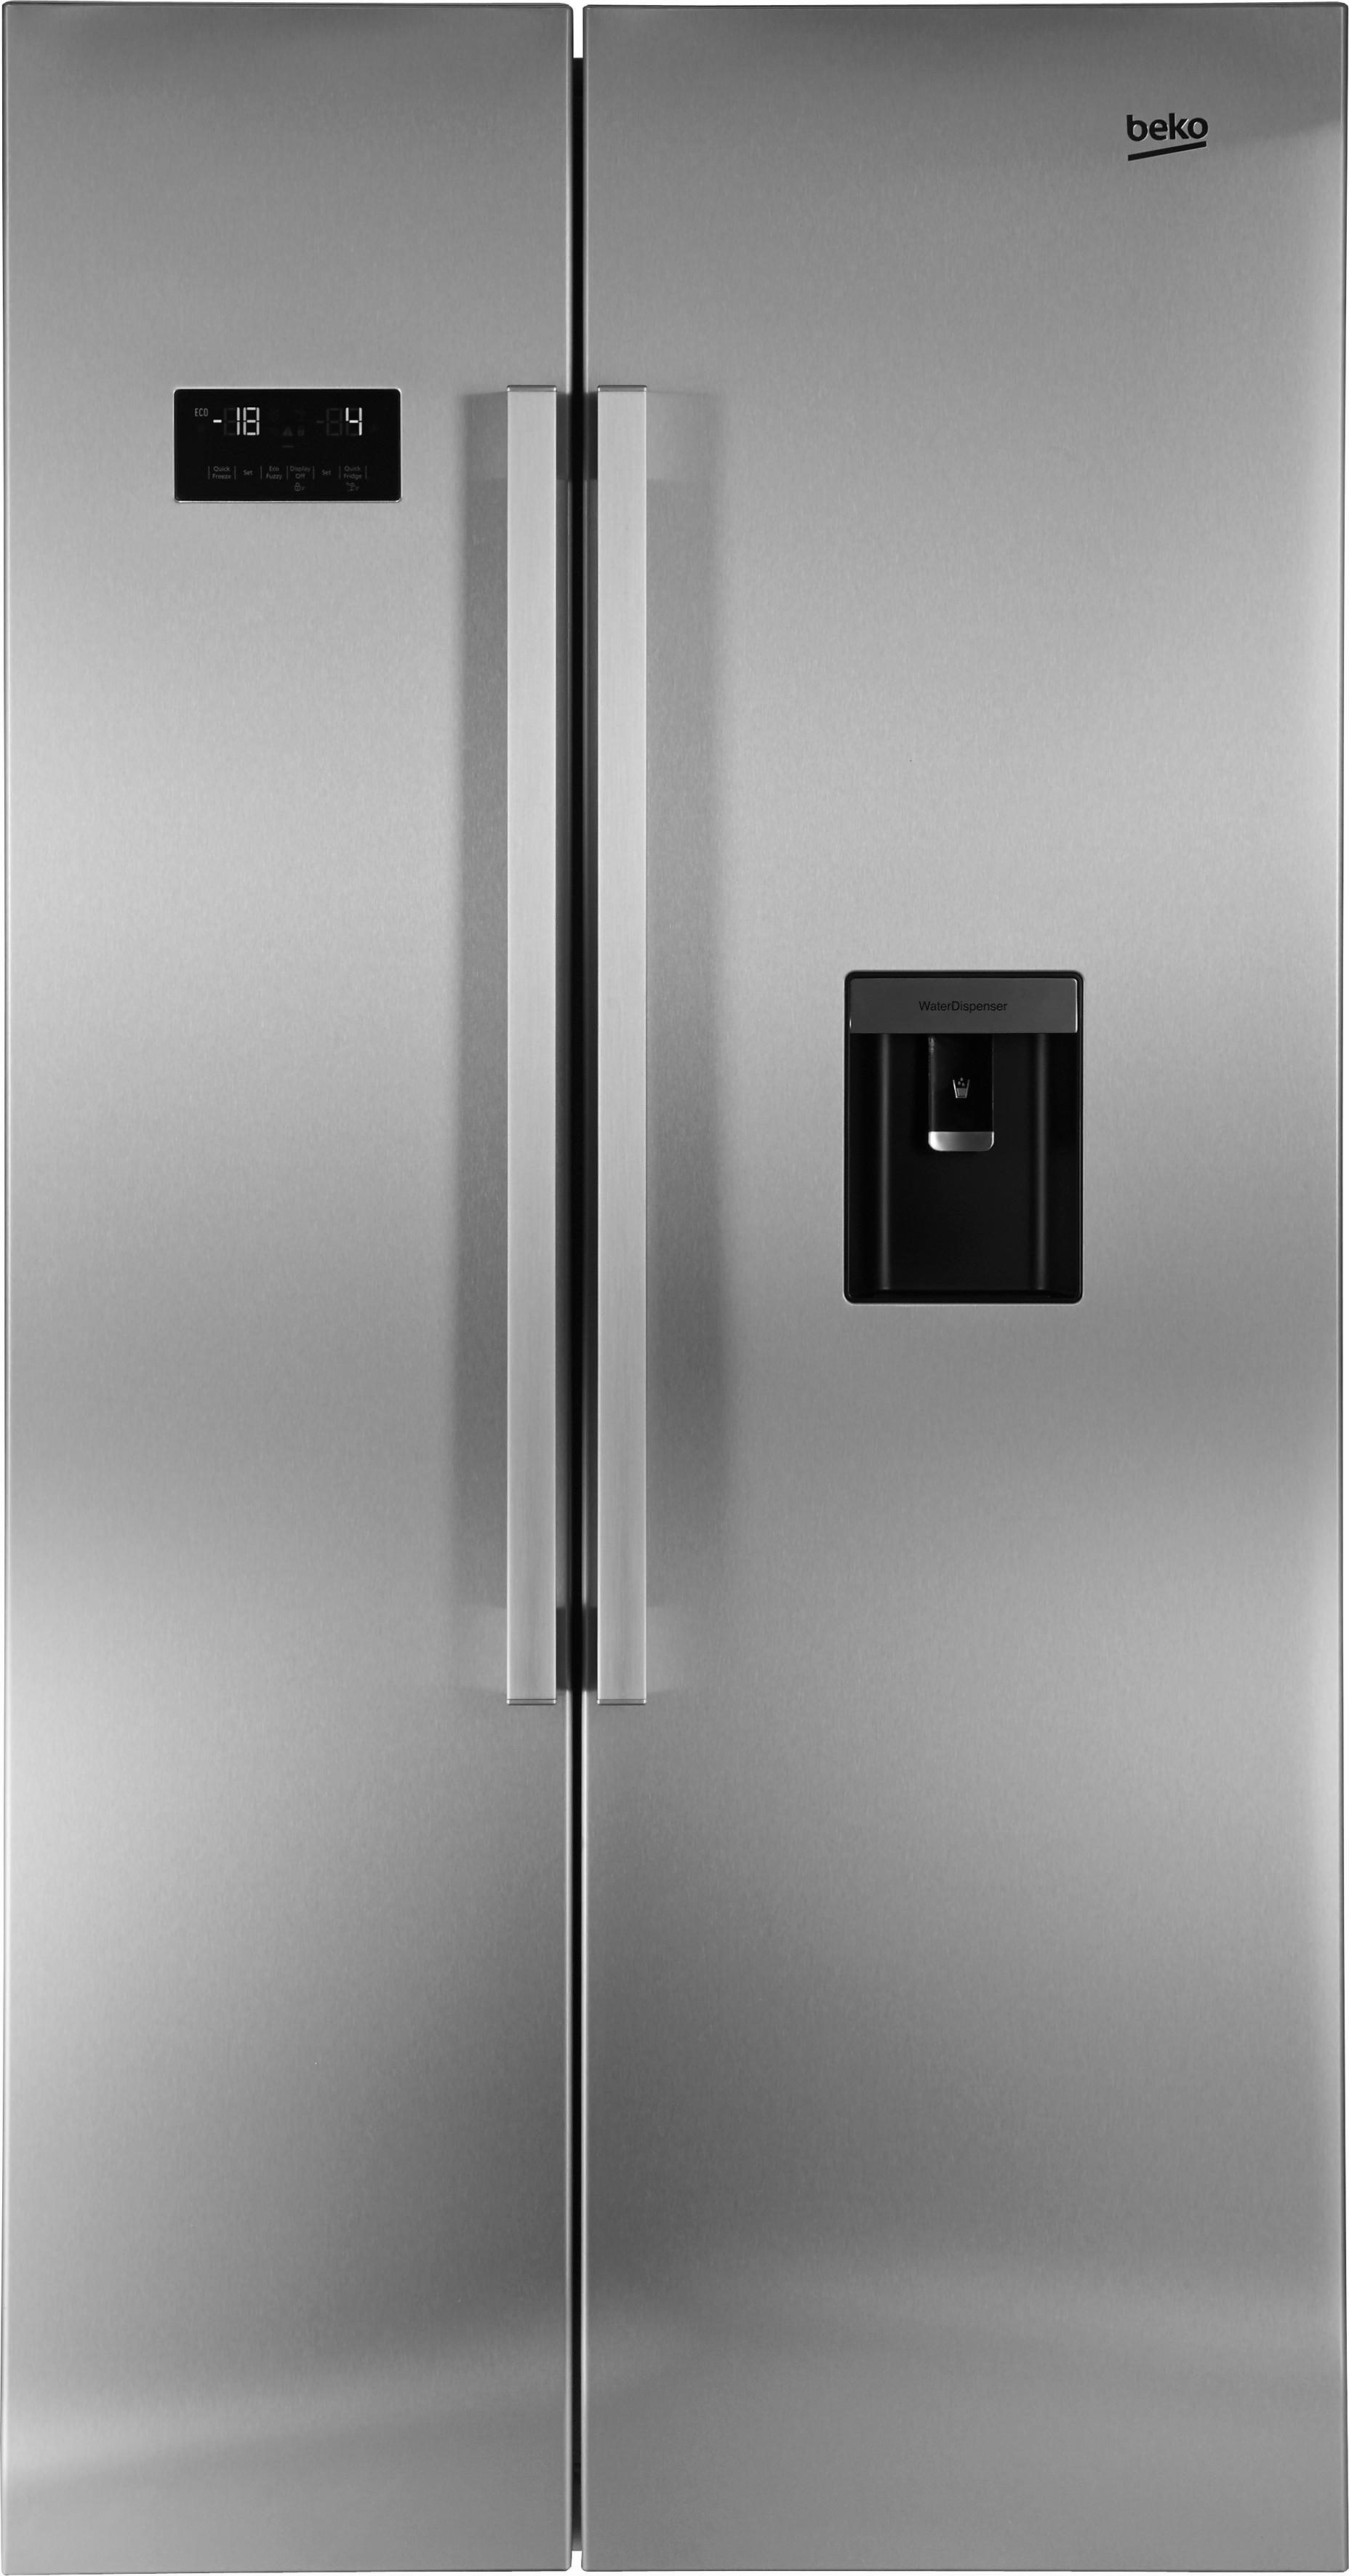 Beko Side by Side GNO 163230 X 4J, A++, NoFrost, 179 cm hoch